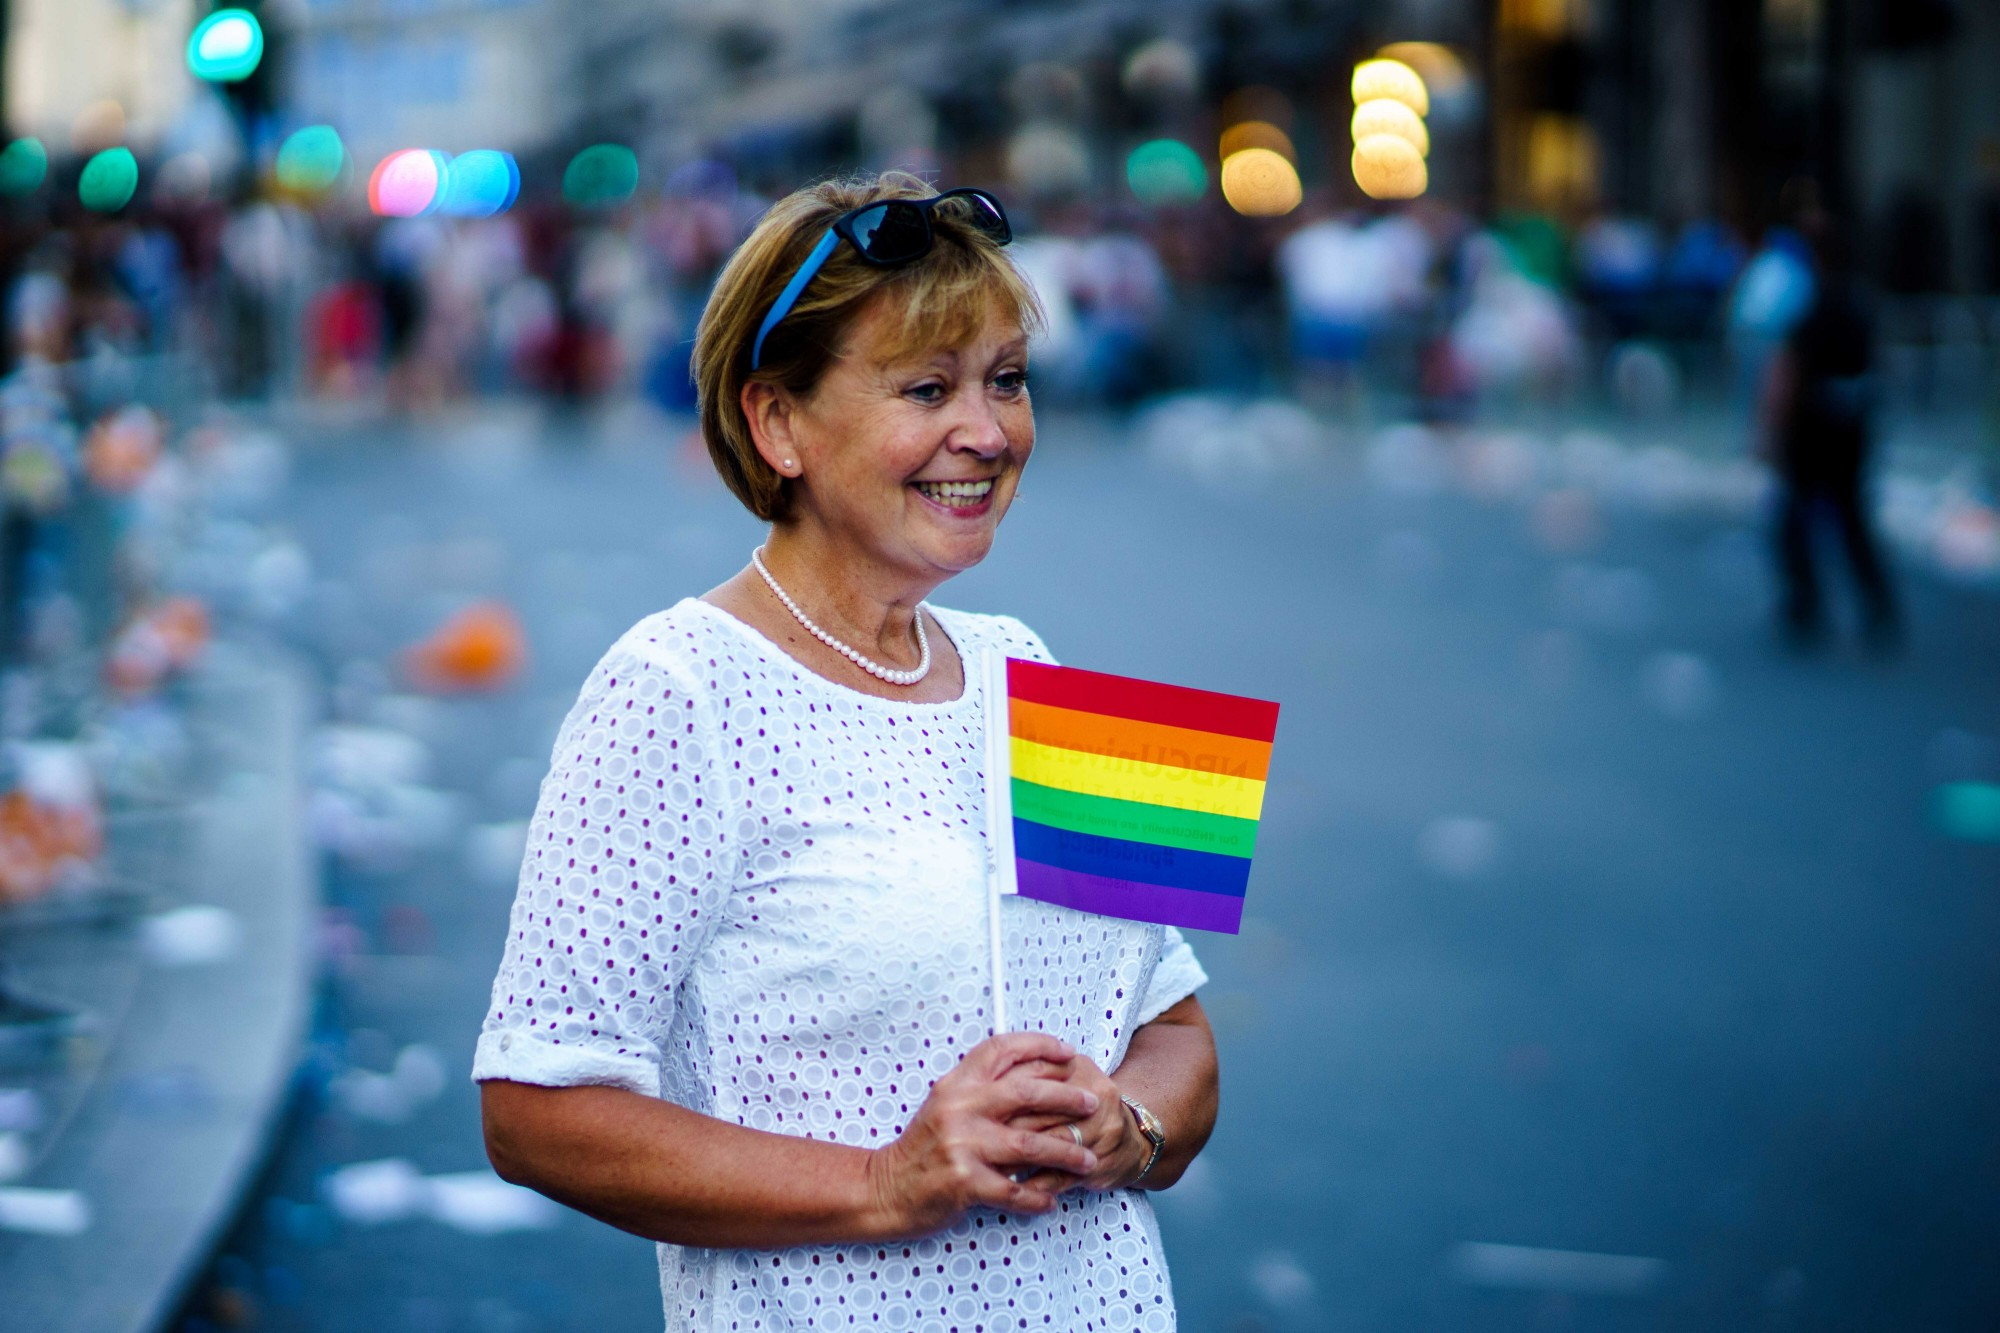 A white woman who looks to be young grandmother age, stands on a parade route, holding a small rainbow flag and smiling.